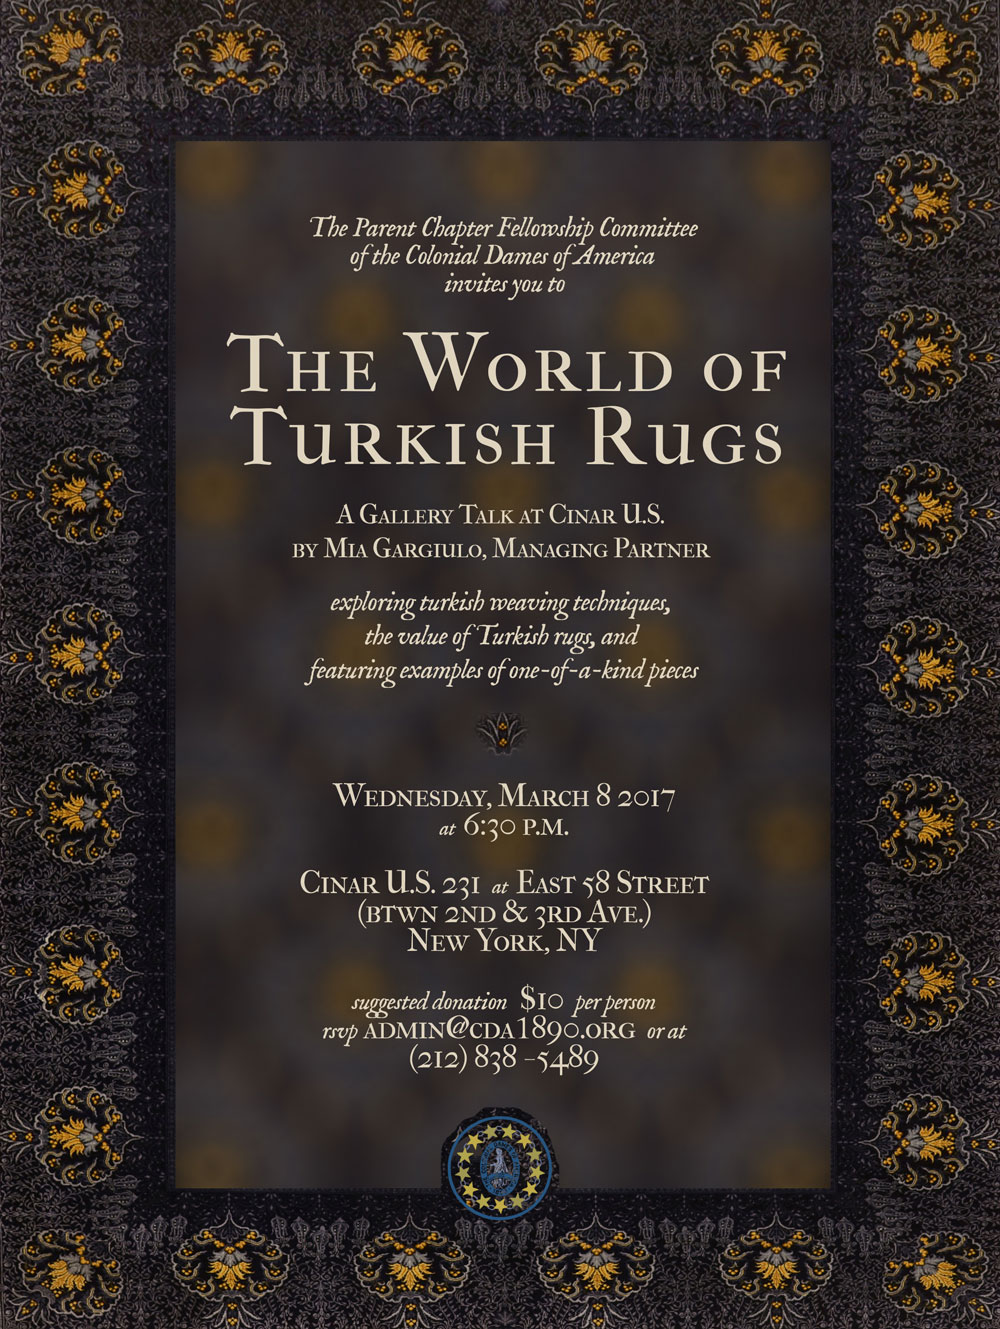 3 8 17 The World Of Turkish Rugs